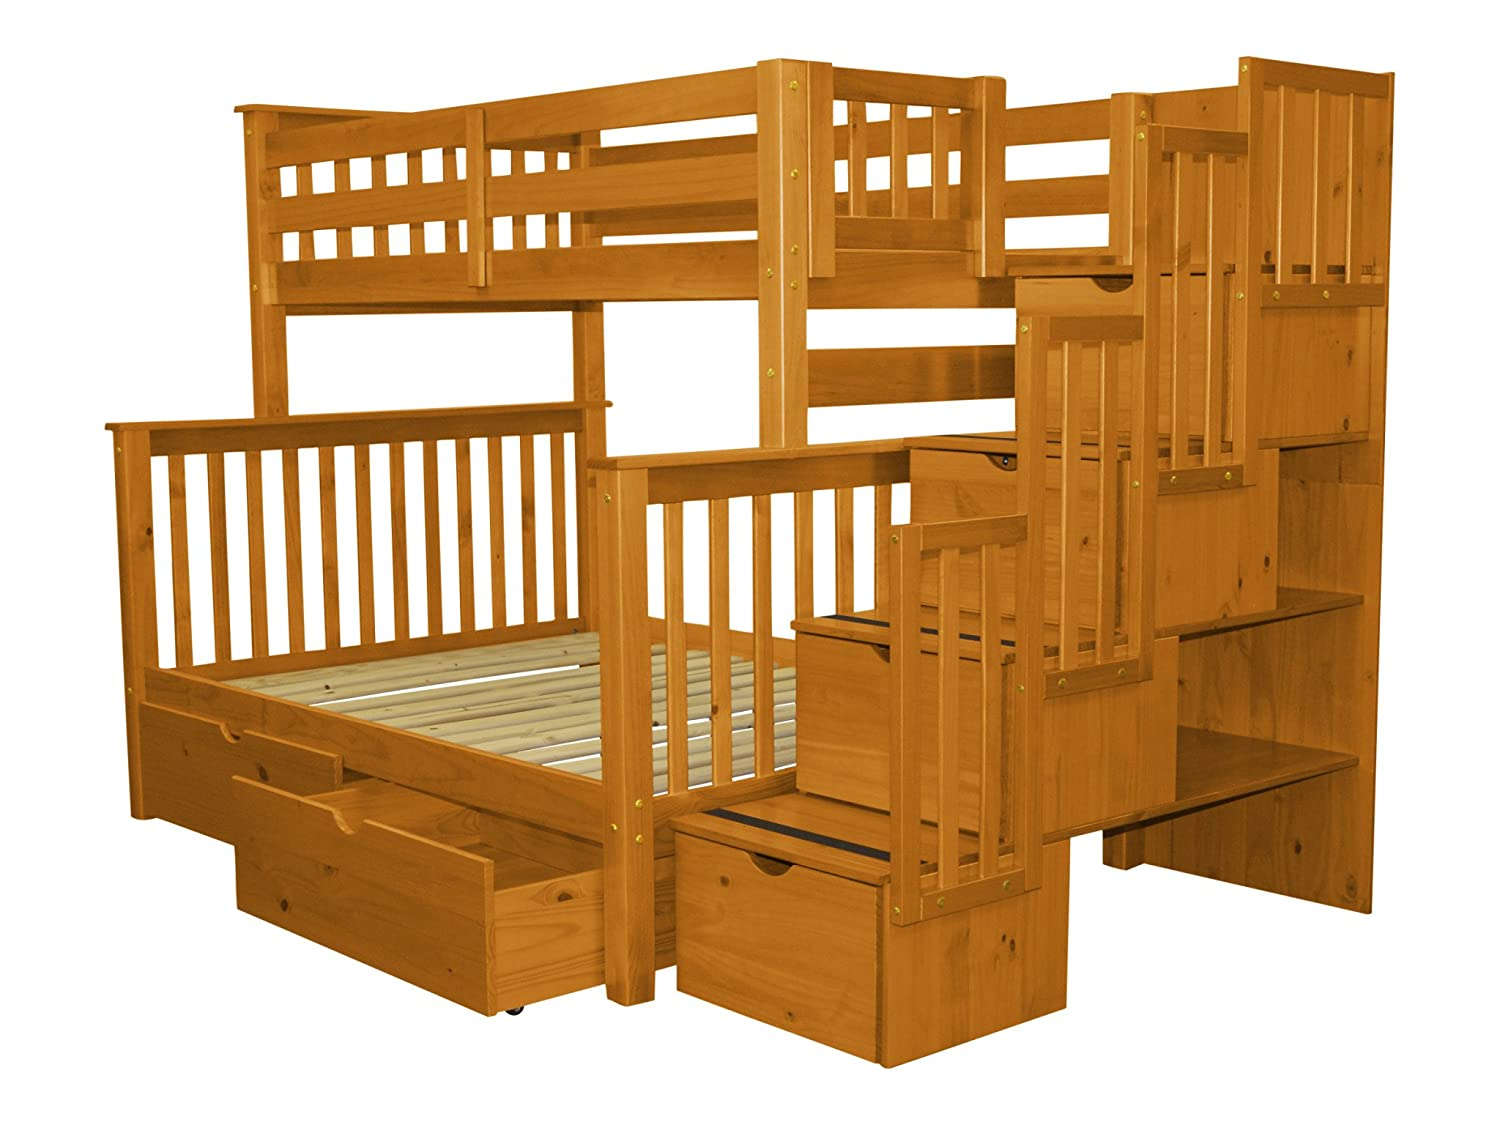 Queen Size Bunk Bed Frame Sumptuous Bunk Bed With Desk Underneath In Kids With Kids Room With